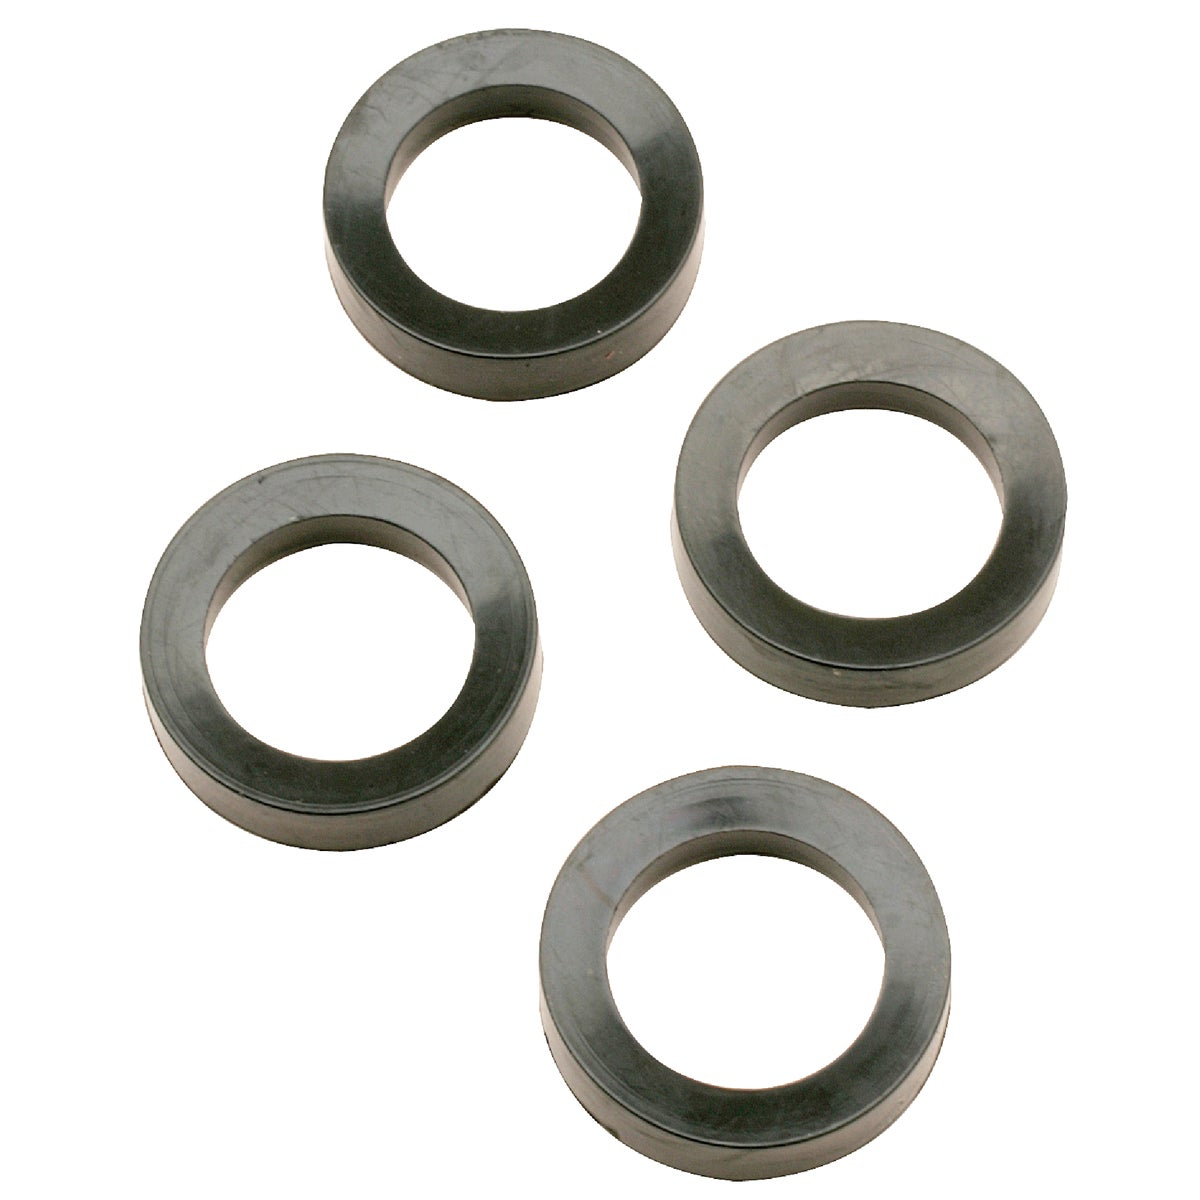 WATER CONNECTION WASHERS